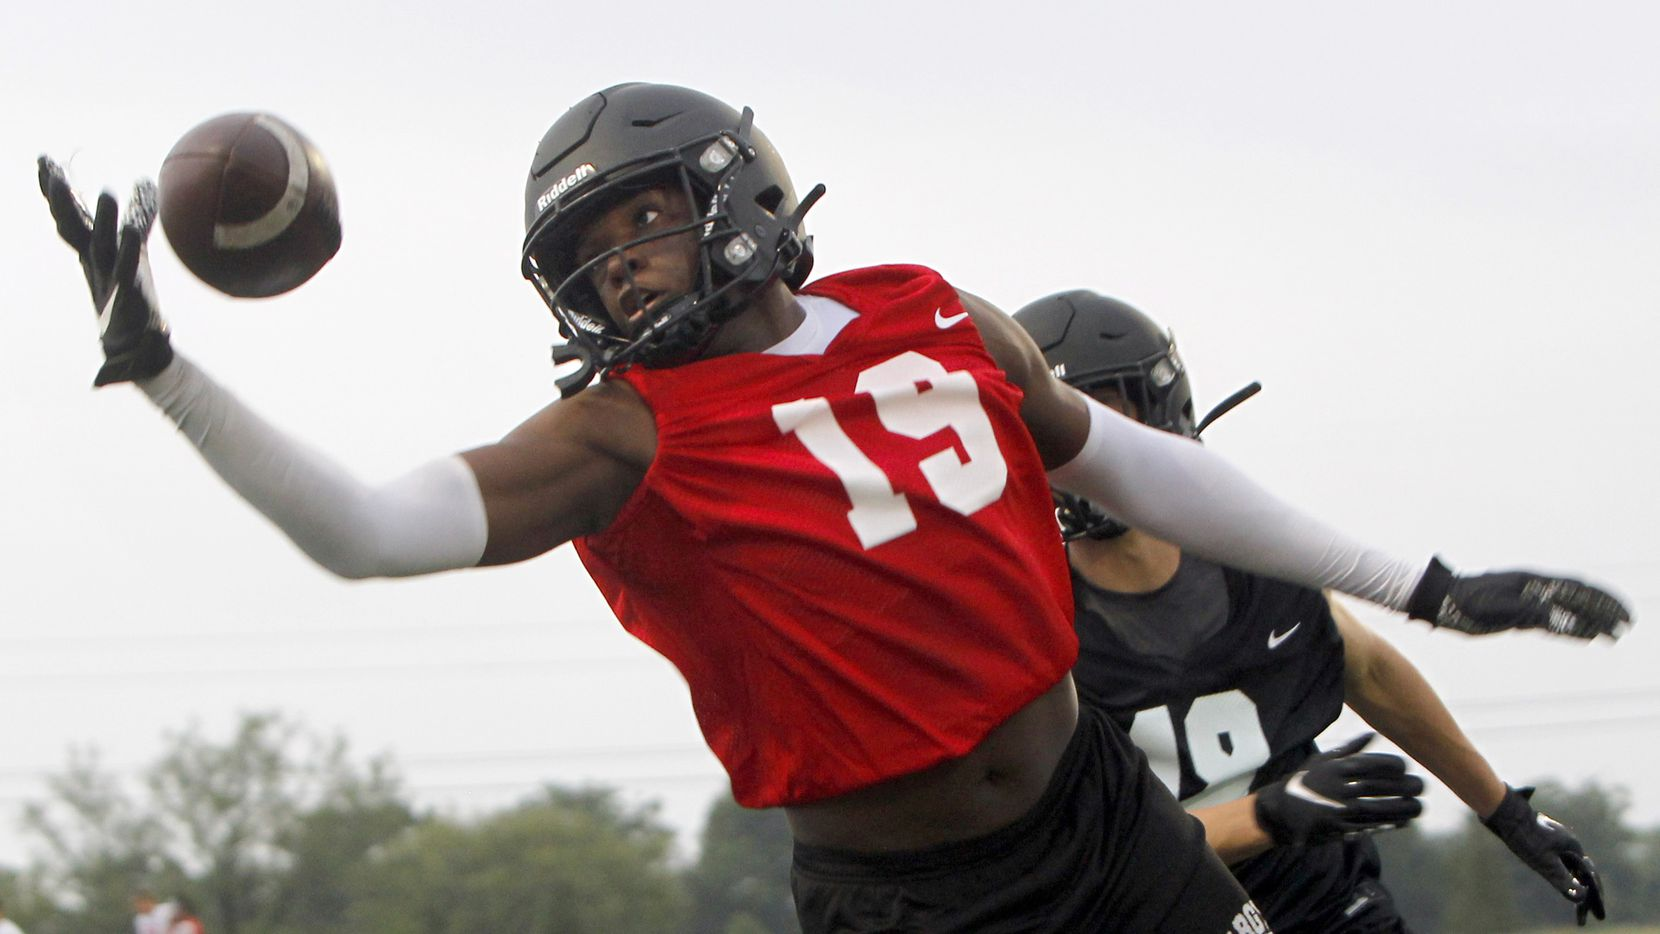 Argyle receiver Jaaquan Felton (19), exhibits sharp focus as he pulls in a pass during a position drill session. Argyle's first day of football practice began at 6 a.m. at their new high school campus on Canyon Falls Drive in Argyle on August 2, 2021.